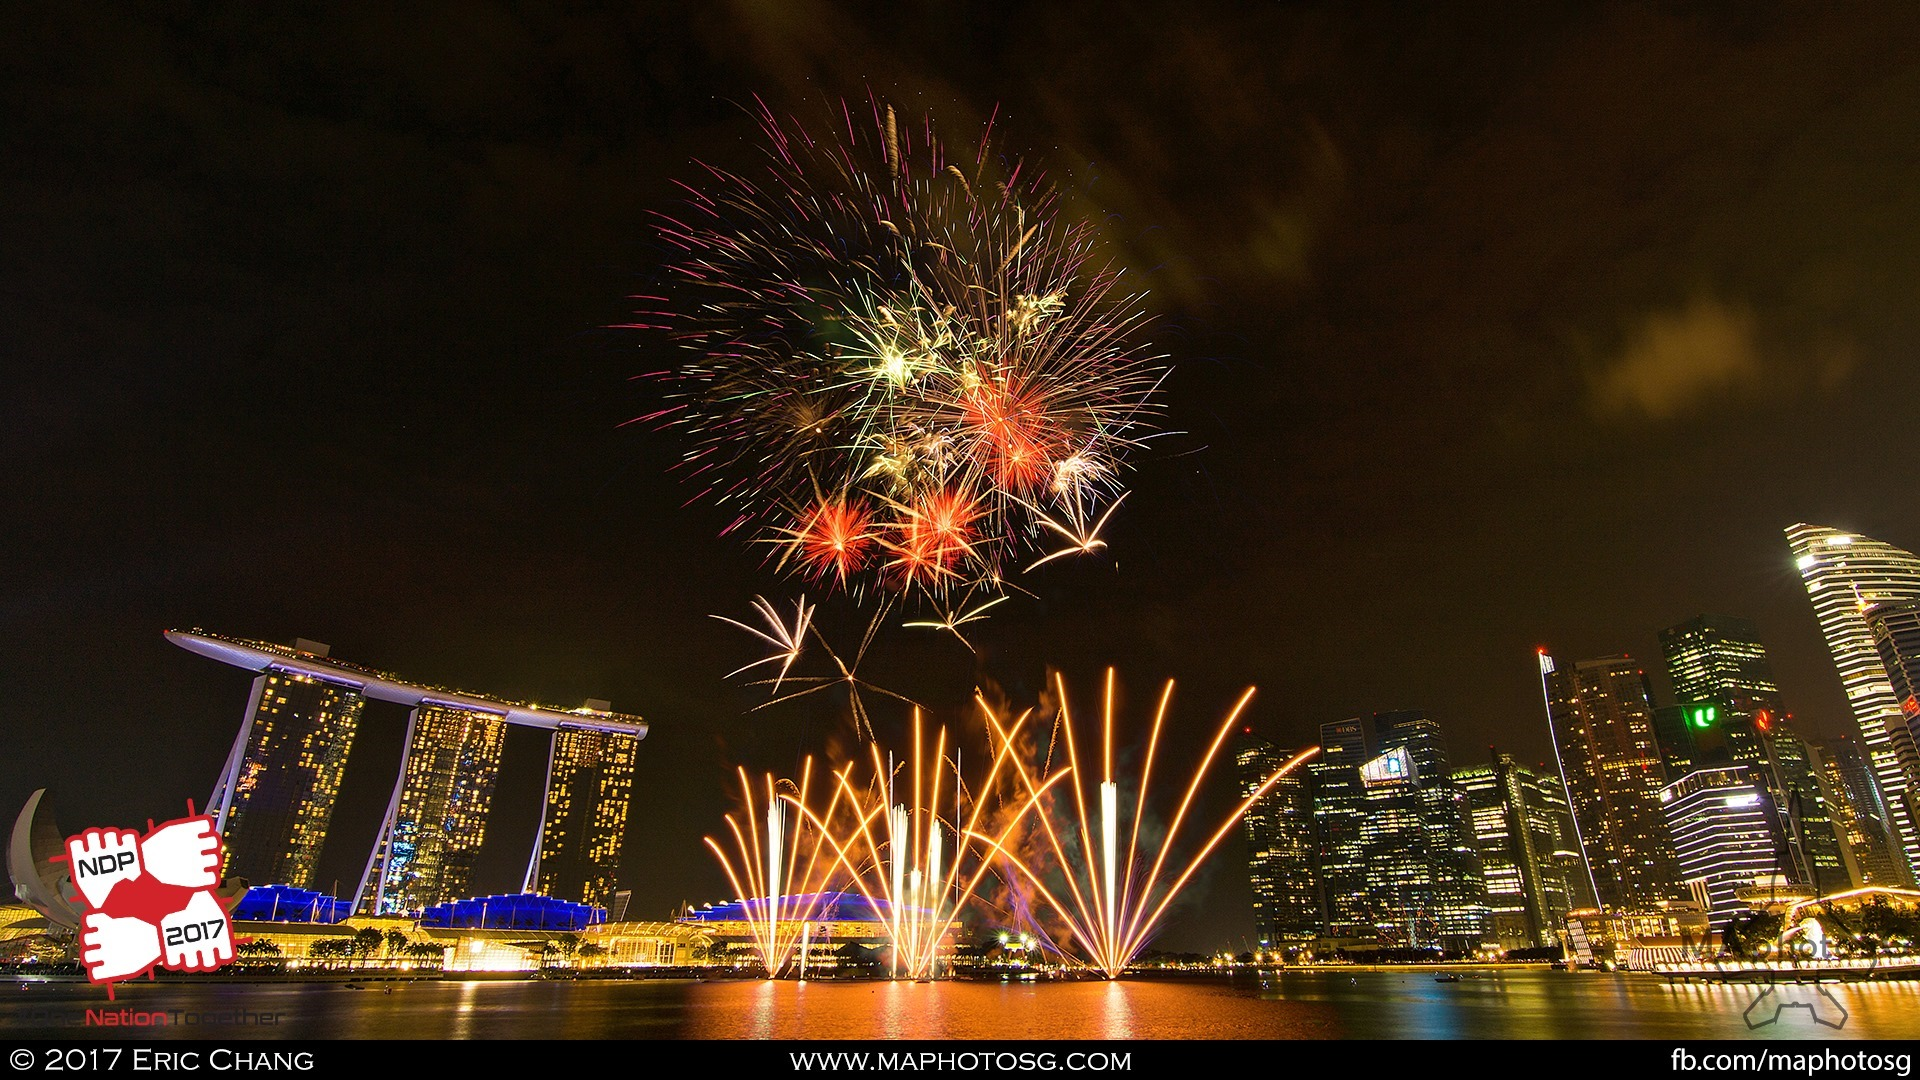 39. Fireworks from the Esplanade Waterfront.